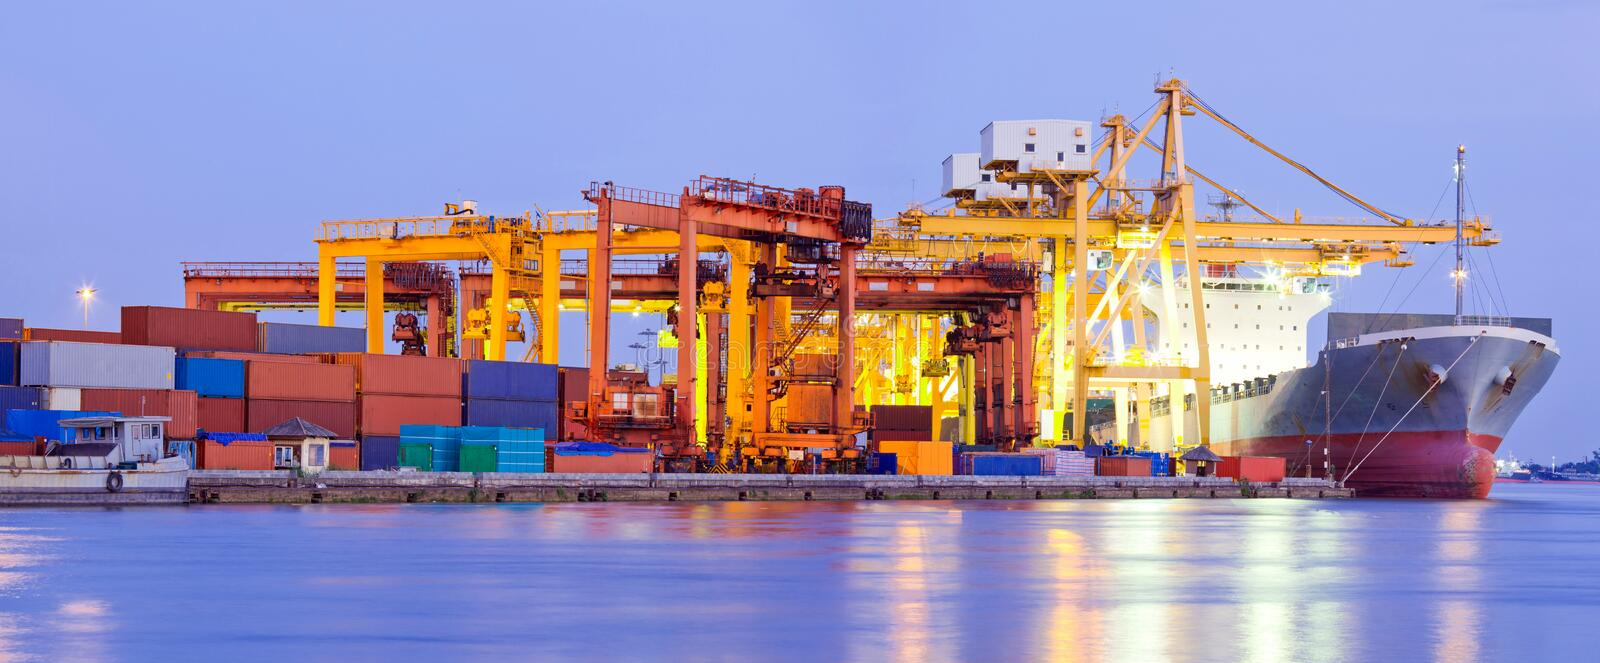 Port Terminal Panorama Industry stock images